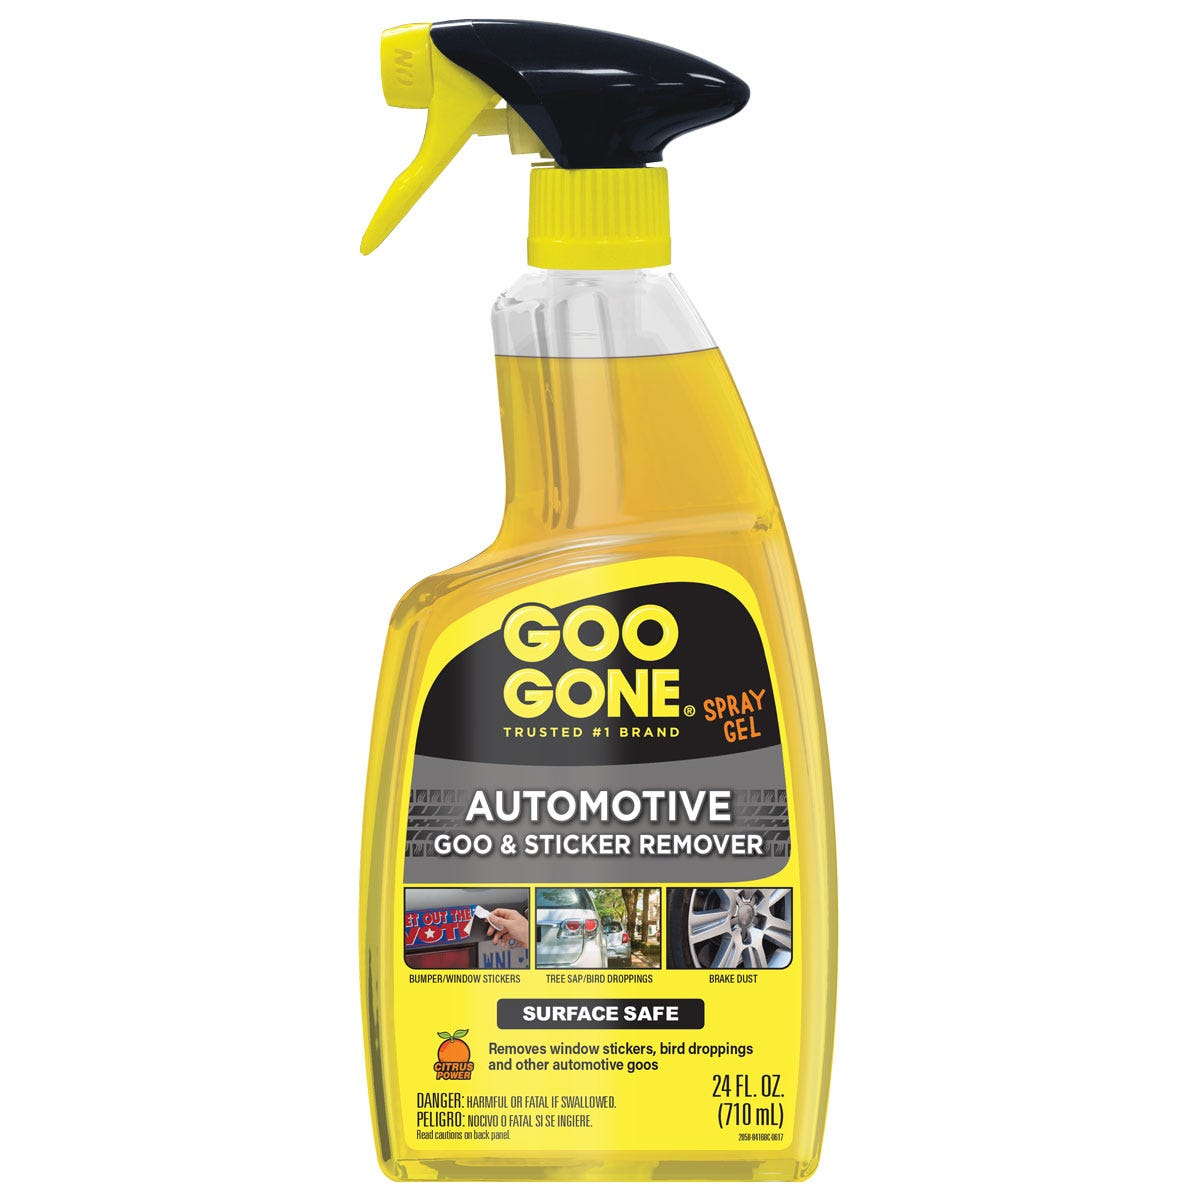 https://googone.com/media/catalog/product/g/o/goo-gone-automotive-spray_front_1.jpg